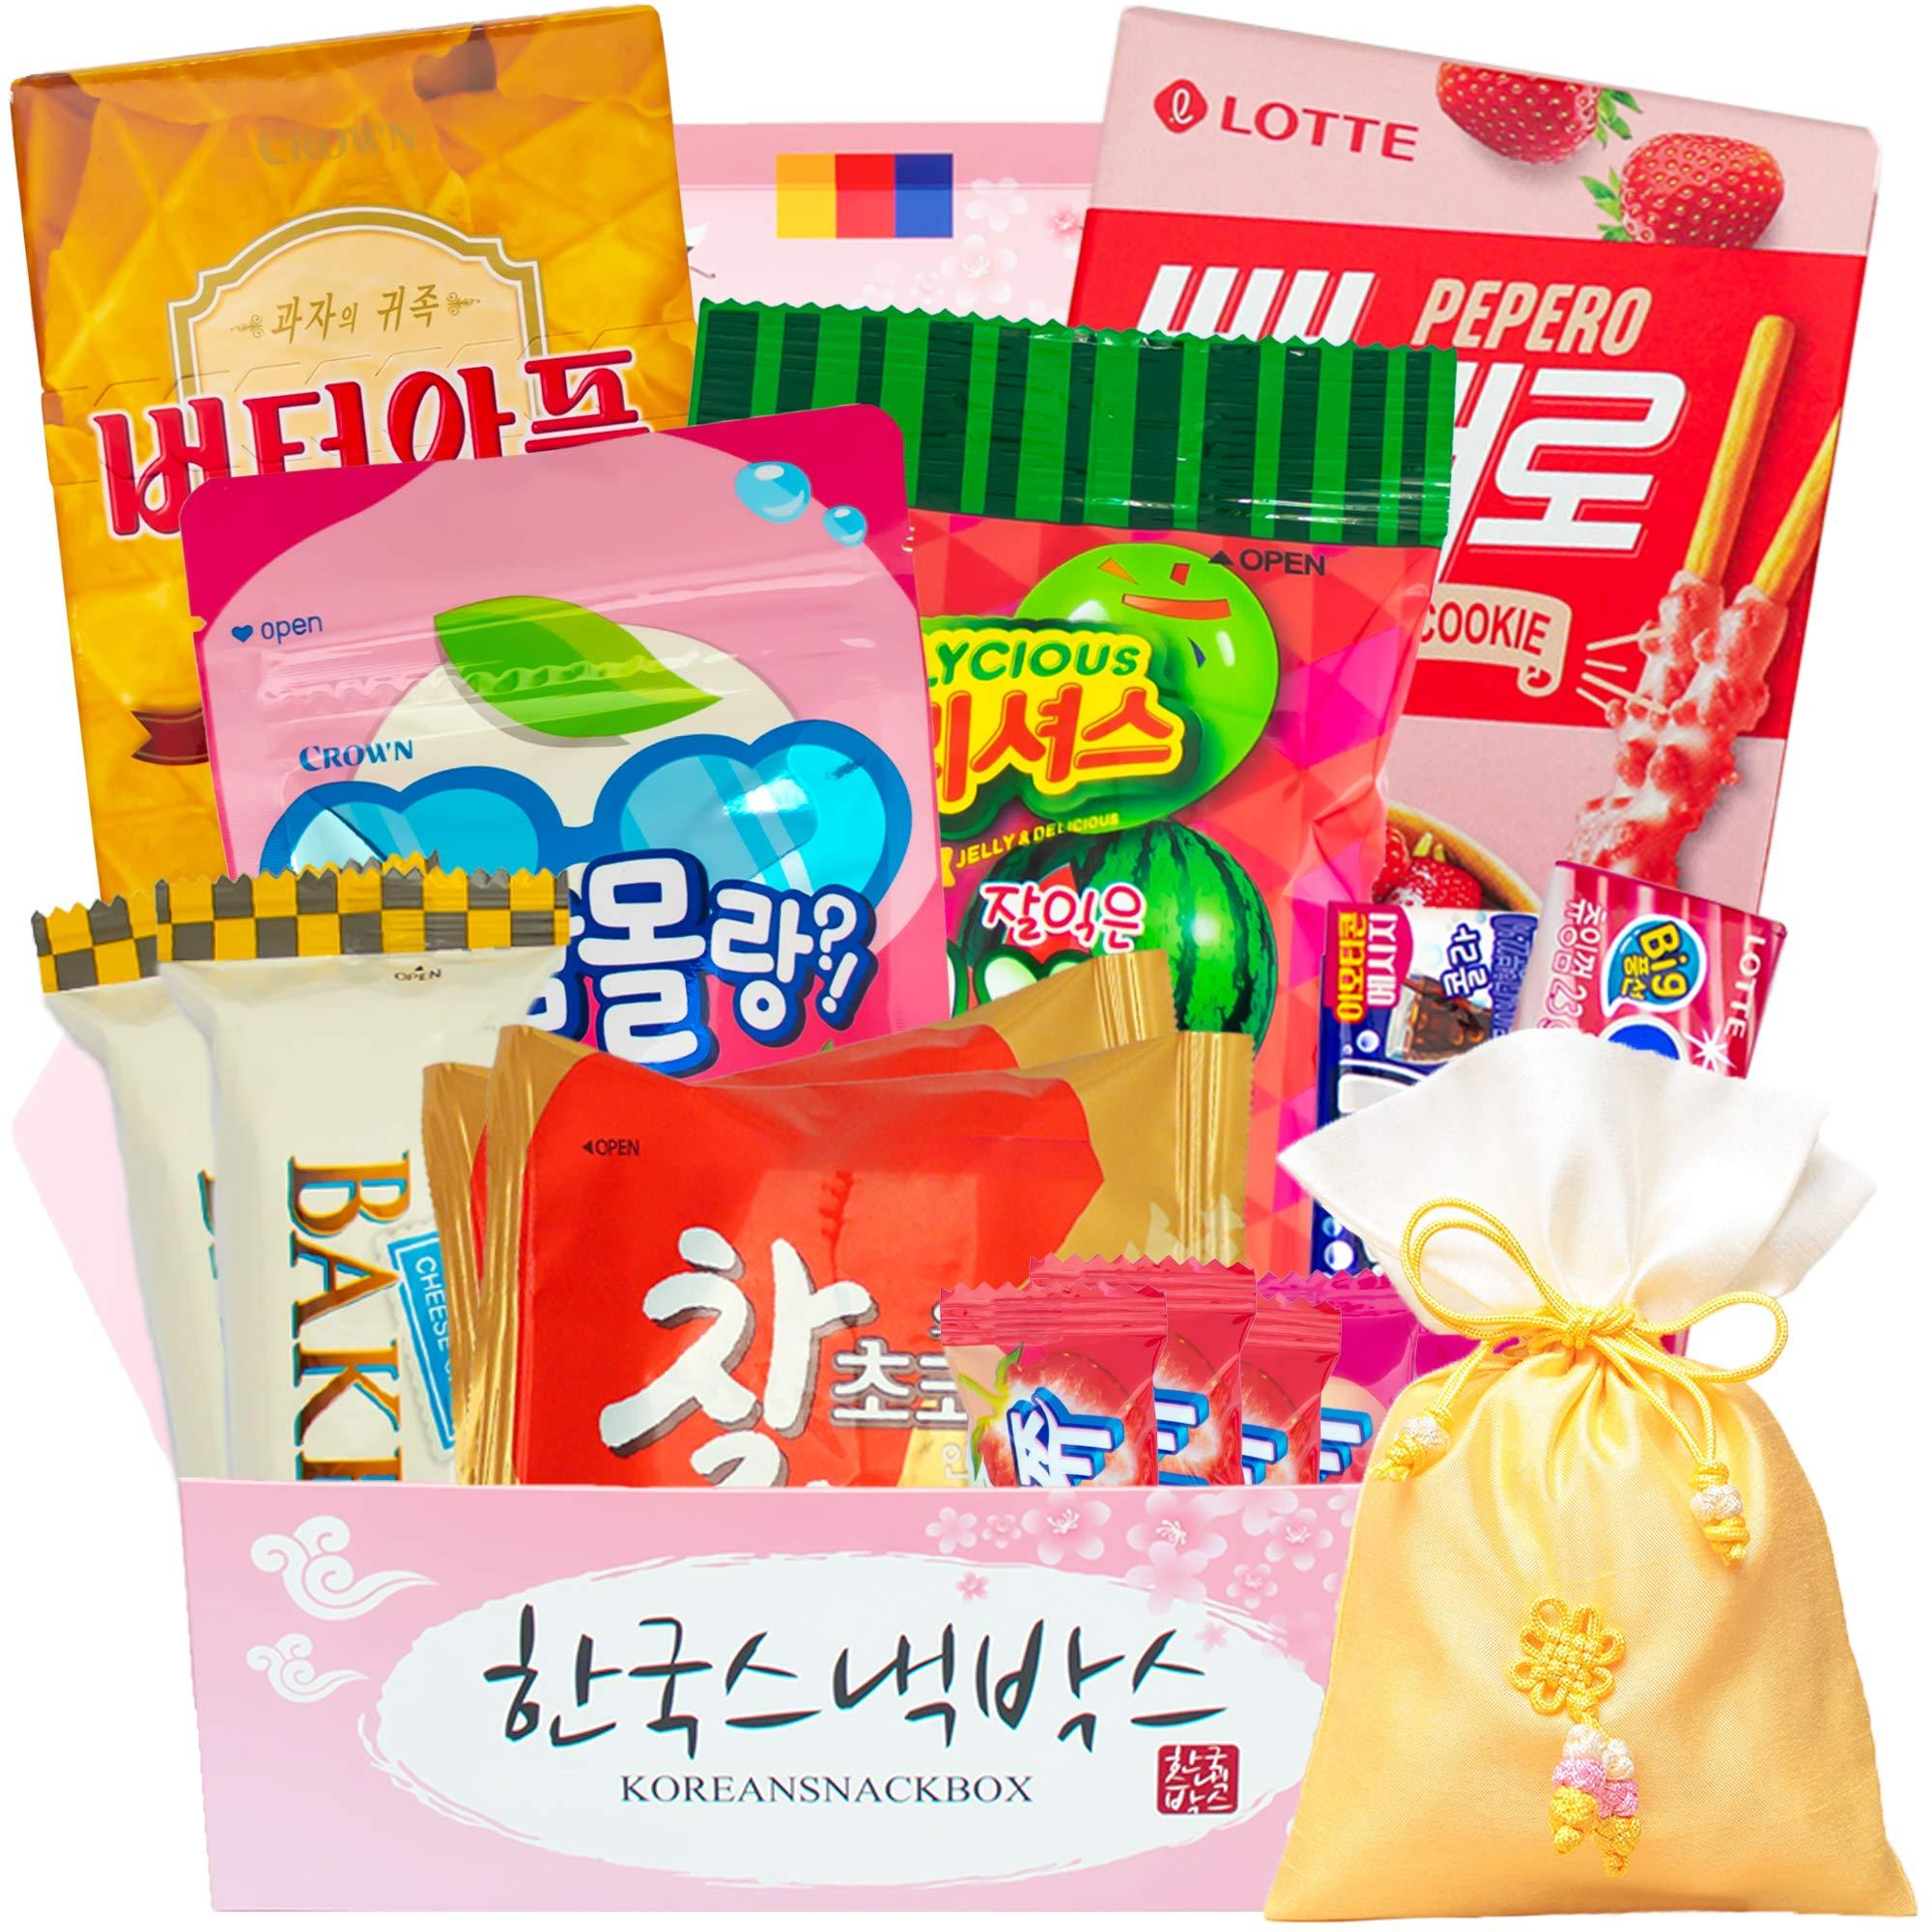 Korean Snack Box - Monthly Korean Snack & Candy Subscription Box